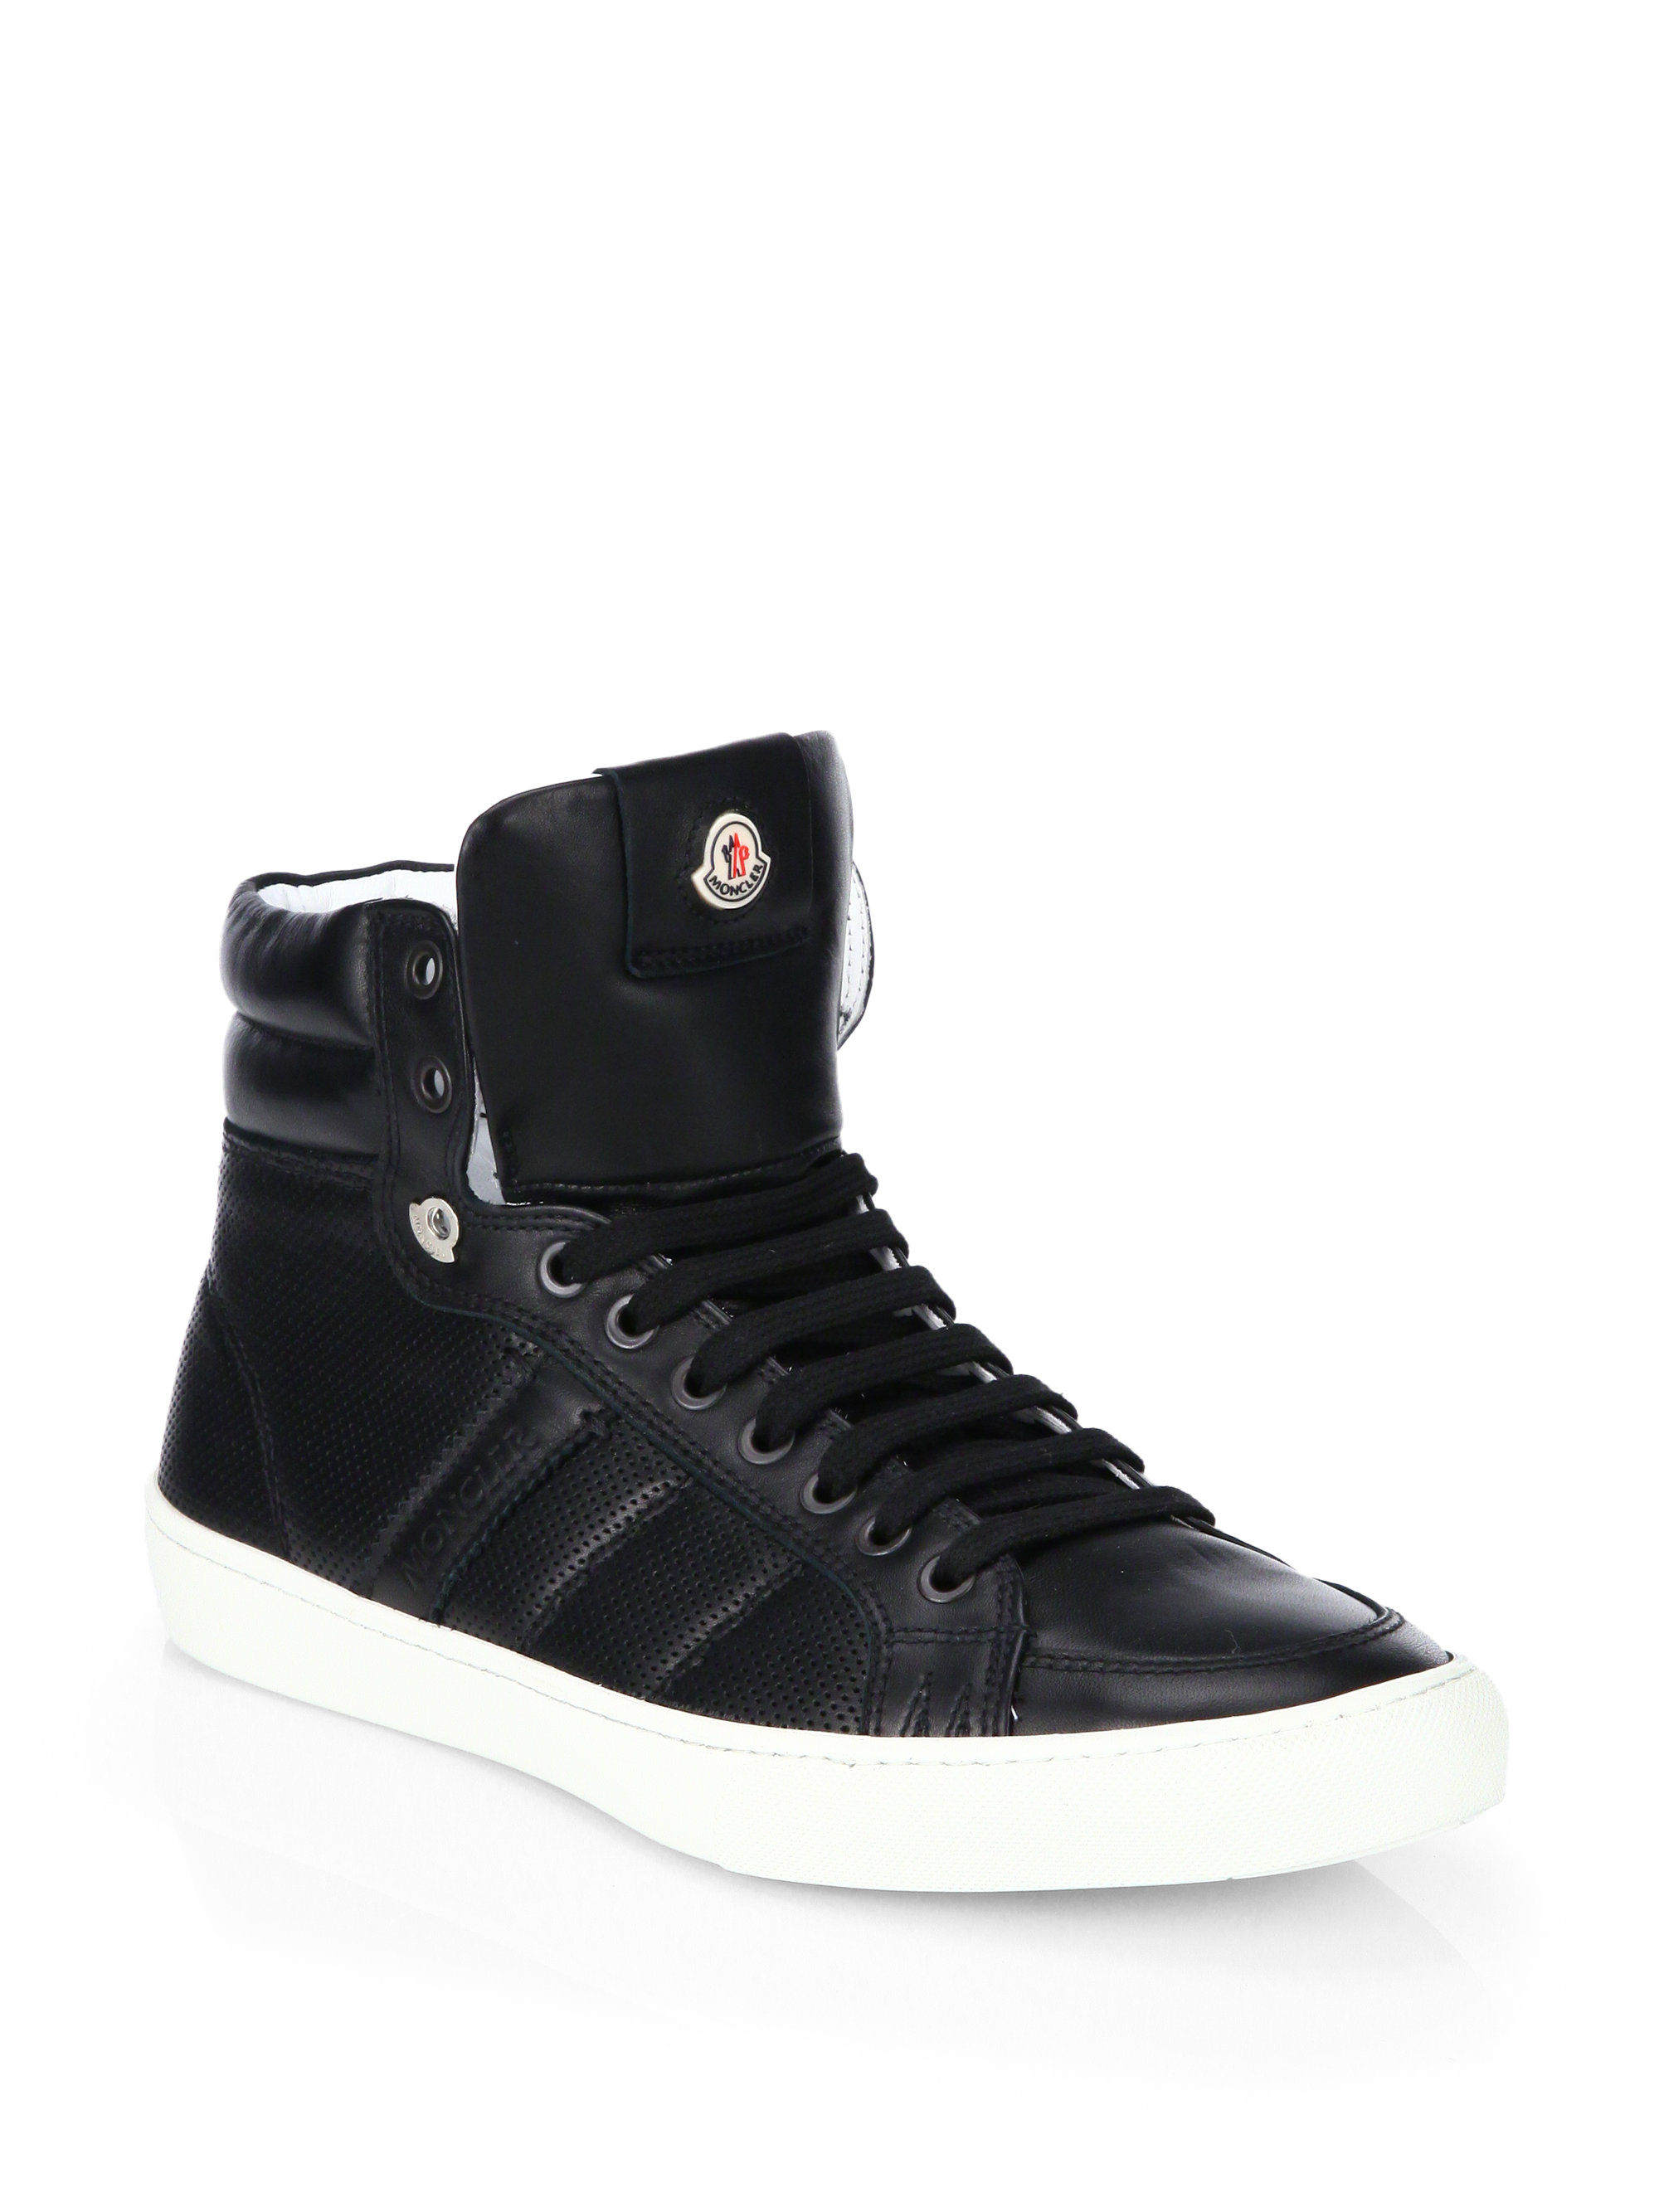 moncler lyon high top sneakers in black for men lyst